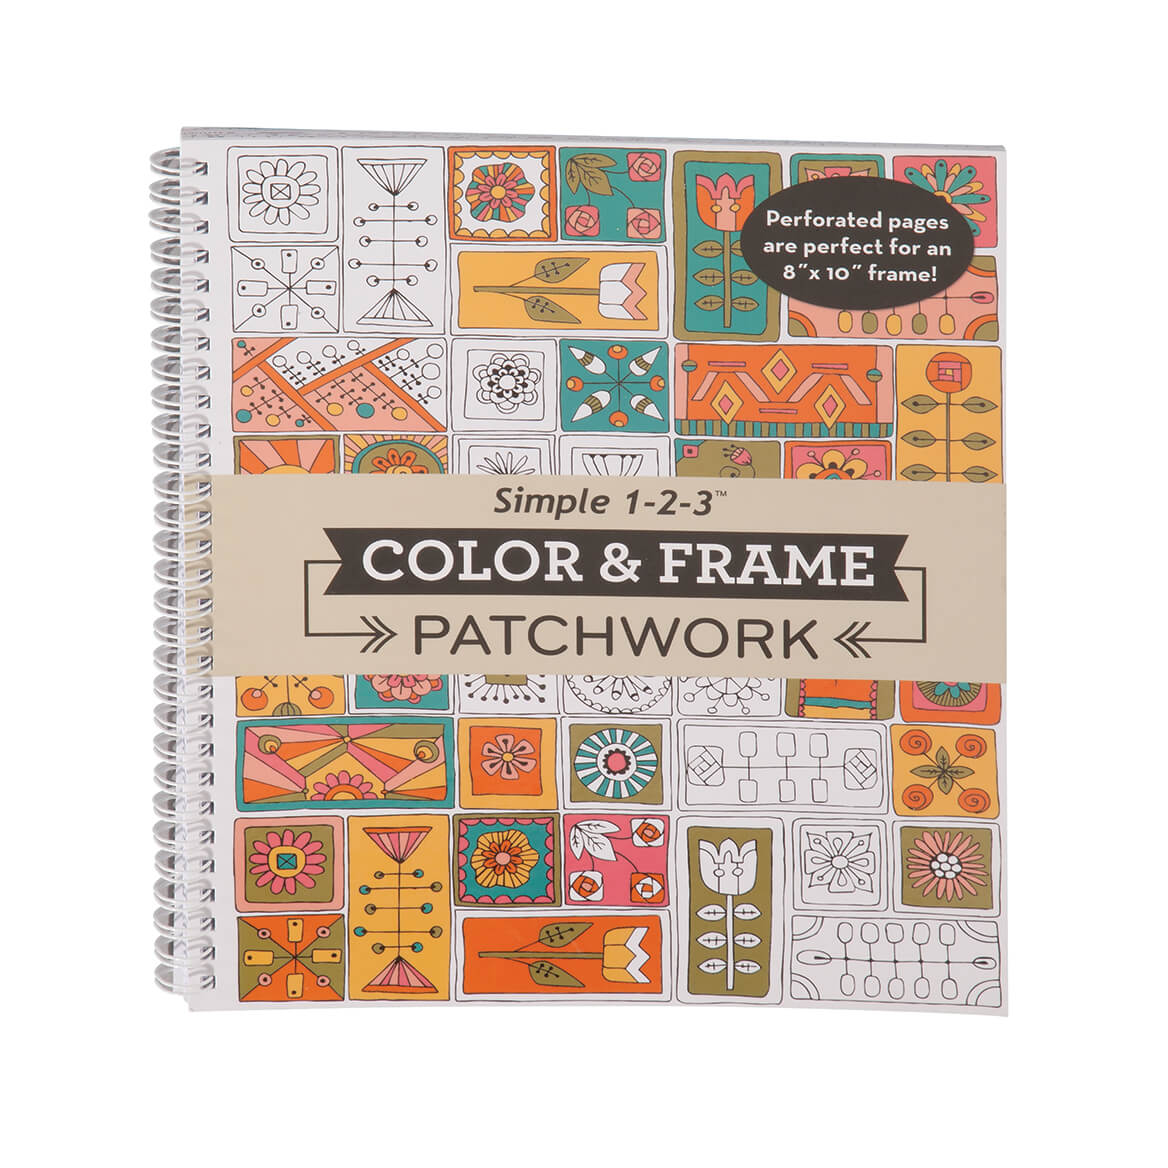 Adult Color & Frame Patchwork Coloring Book Coupons, Discount Codes ...